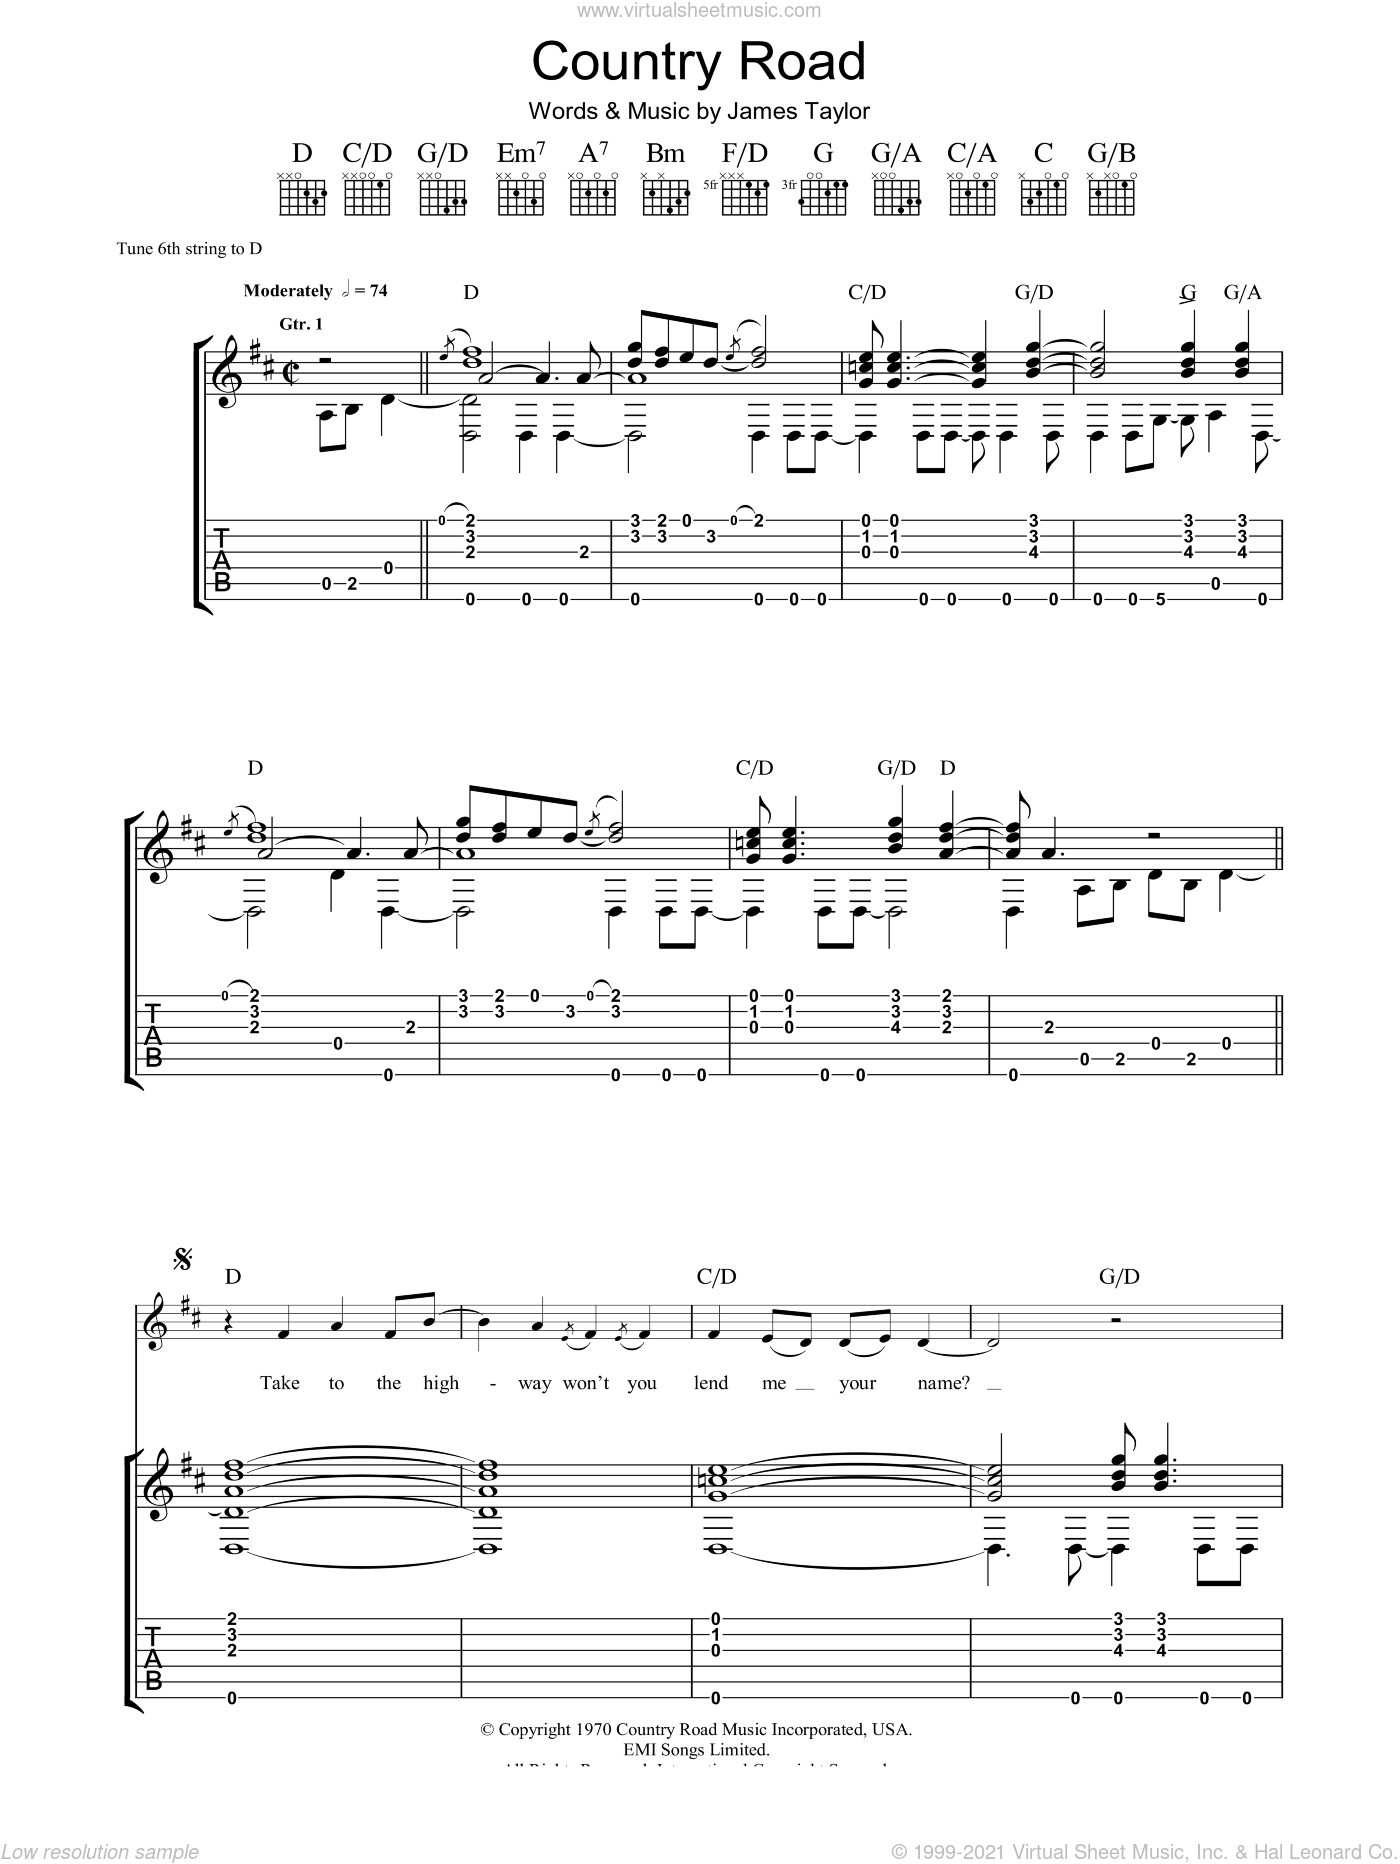 Country Road sheet music for guitar (tablature) by James Taylor, intermediate skill level